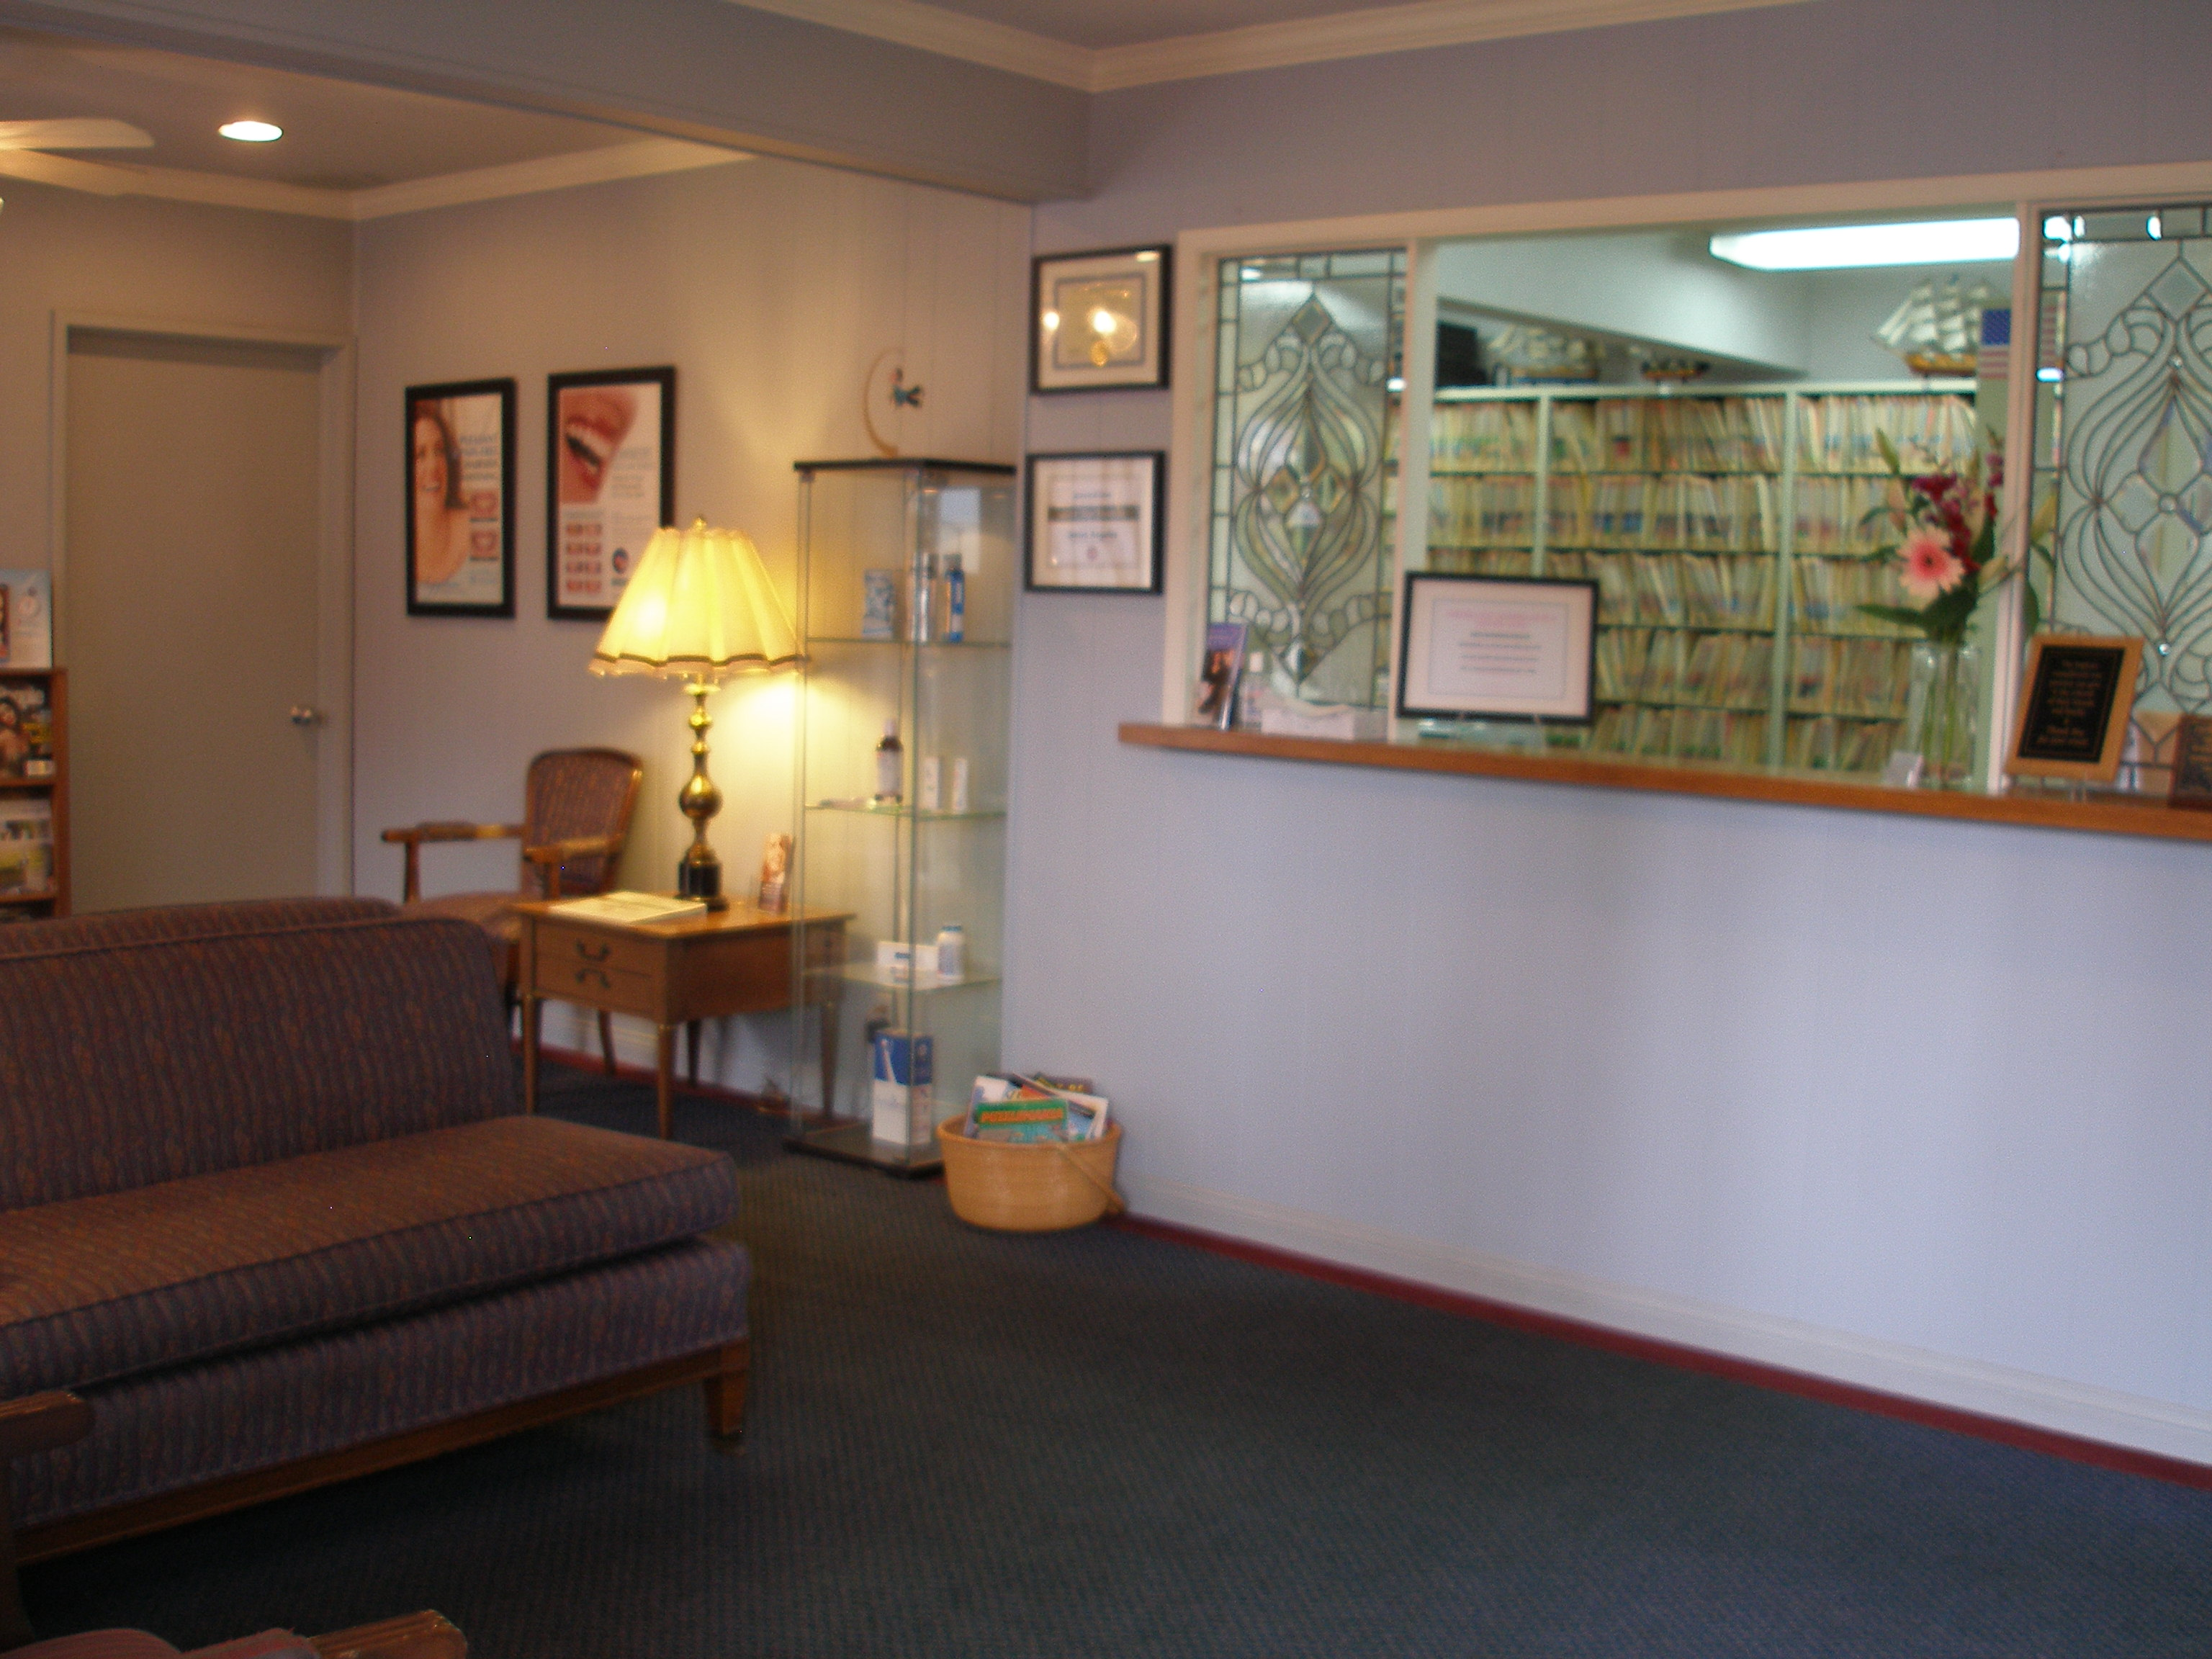 Dr. James Angelos, Cosmetic Dentist, Pasadena, Reception Room 1